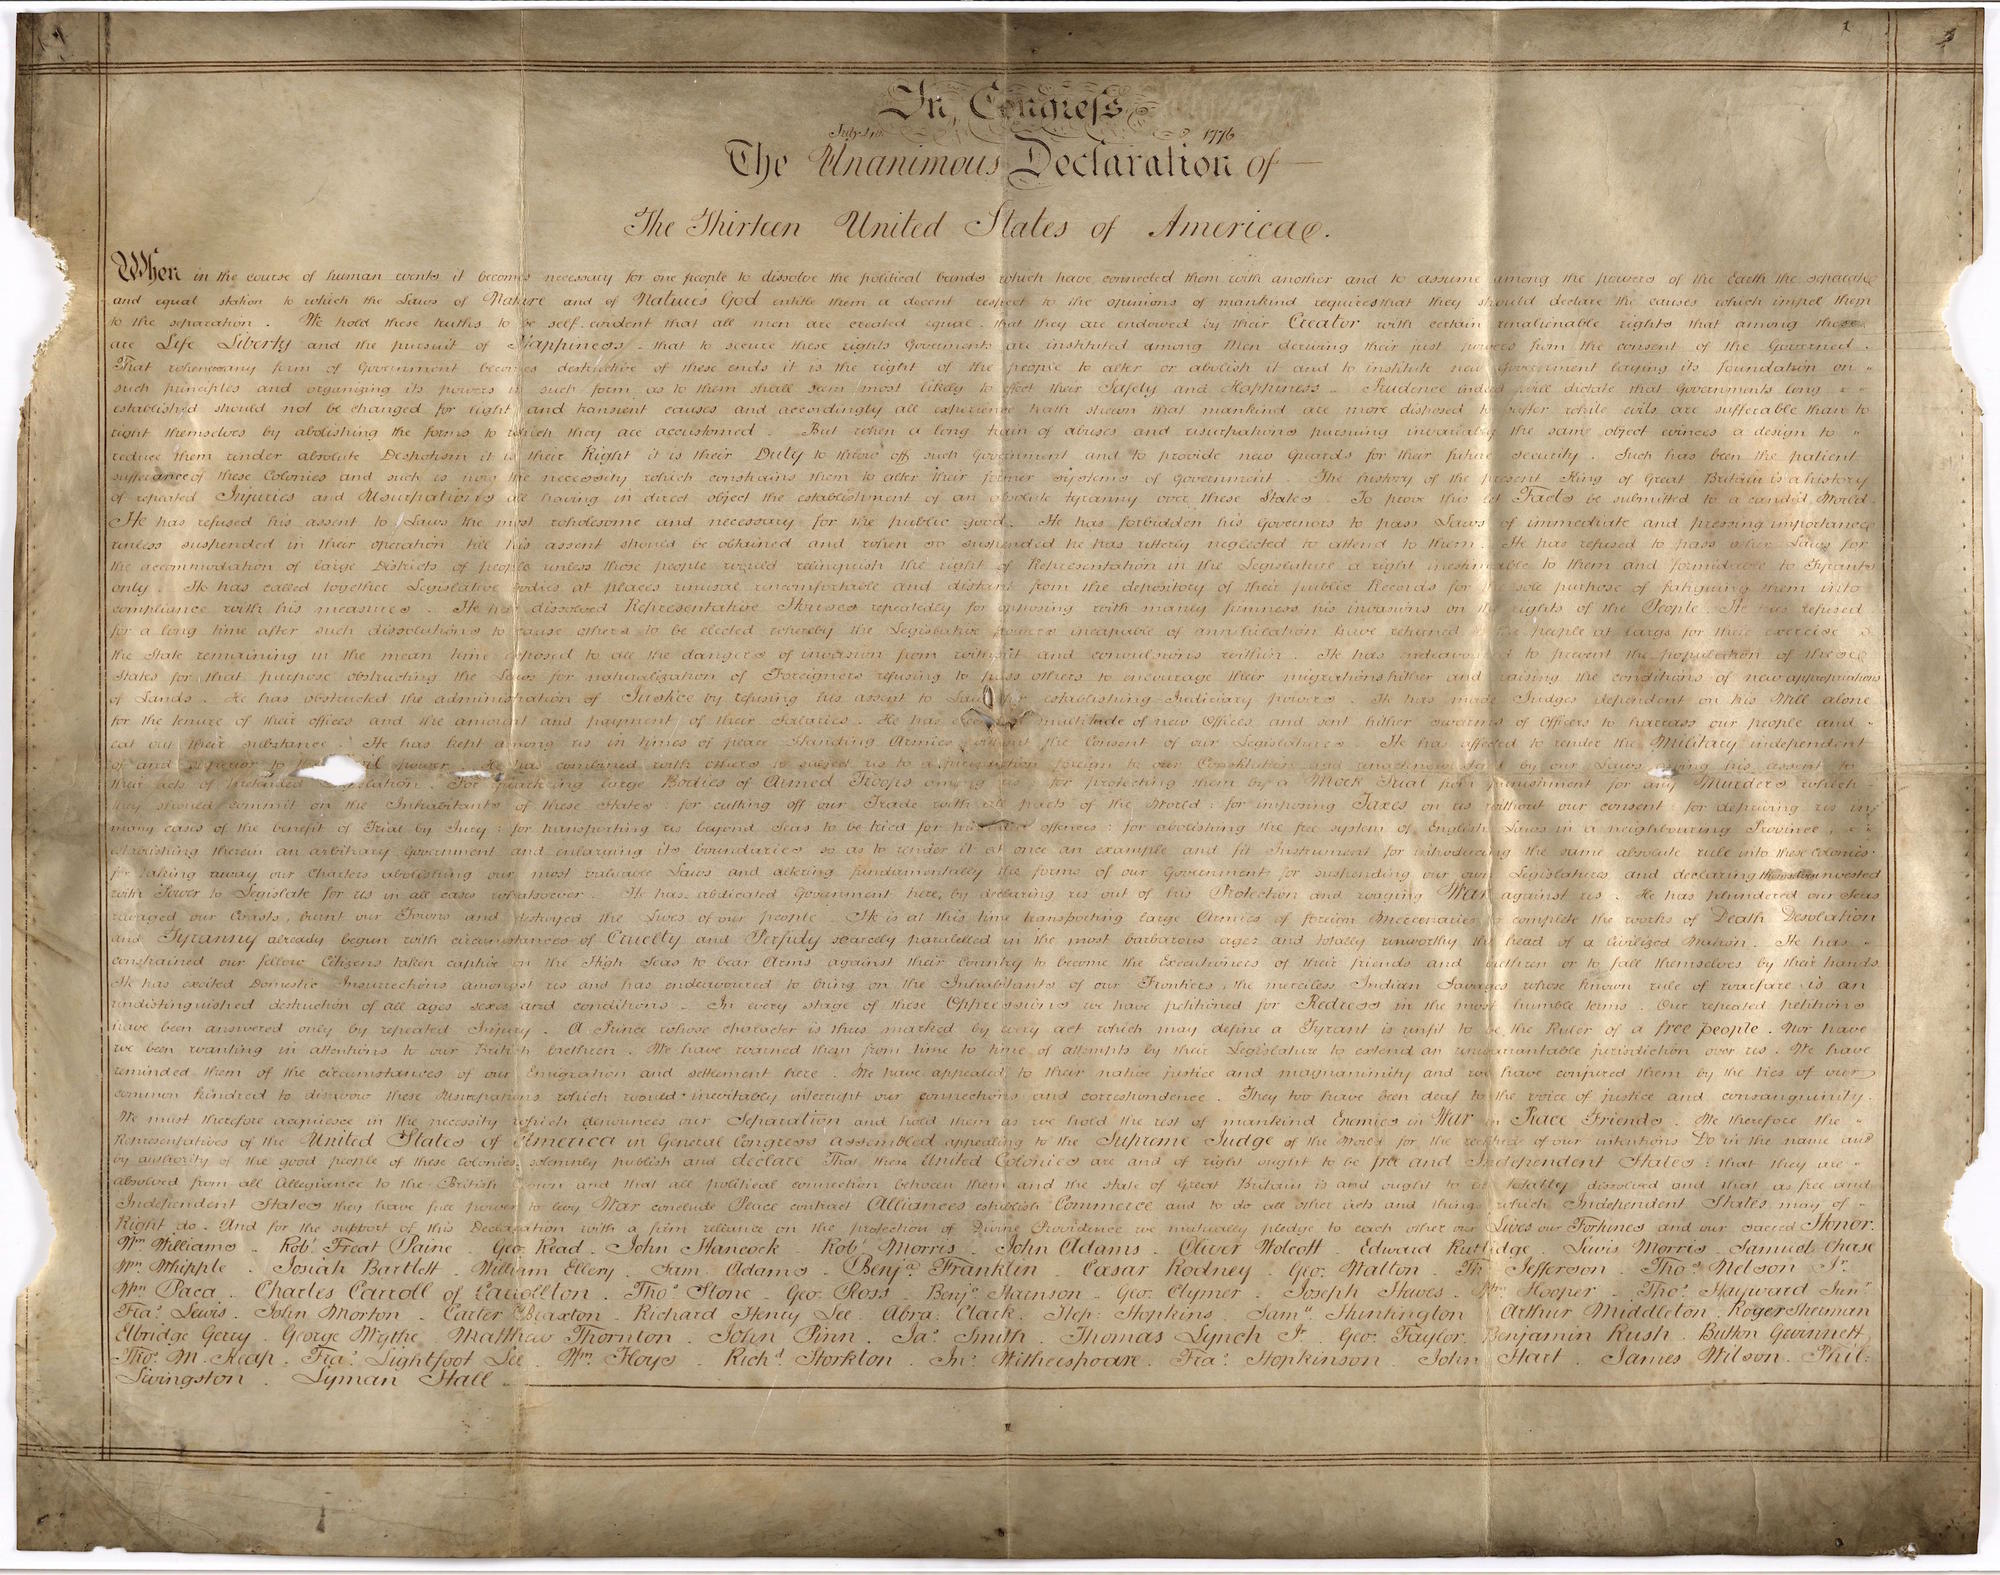 The Sussex Declaration. West Sussex Record Office Add Mss 8981.